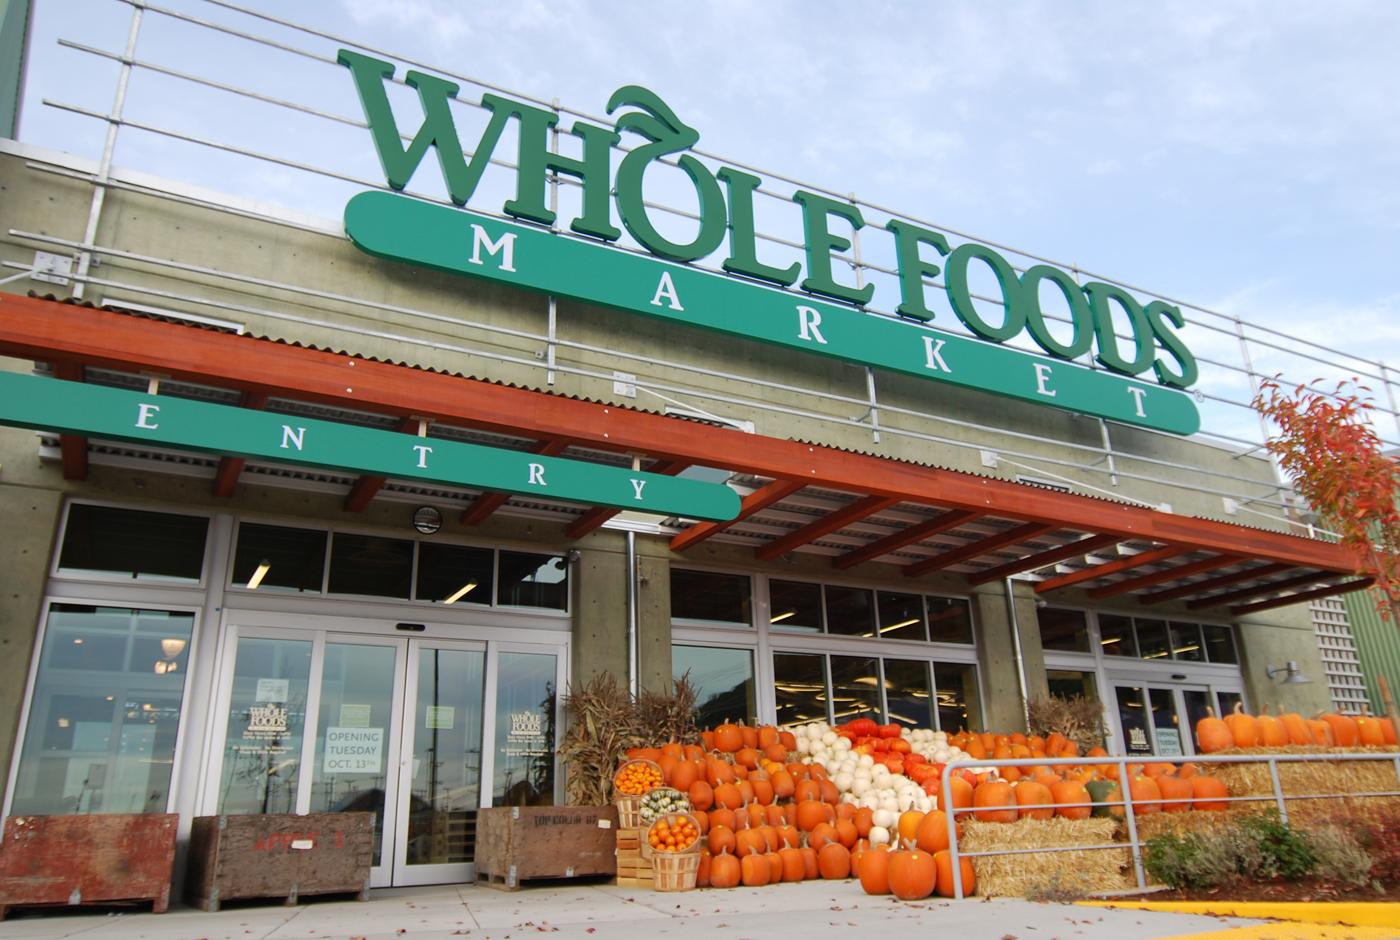 Whole Foods is hiring 6,000 new team members for full time, part time, seasonal, permanent across California